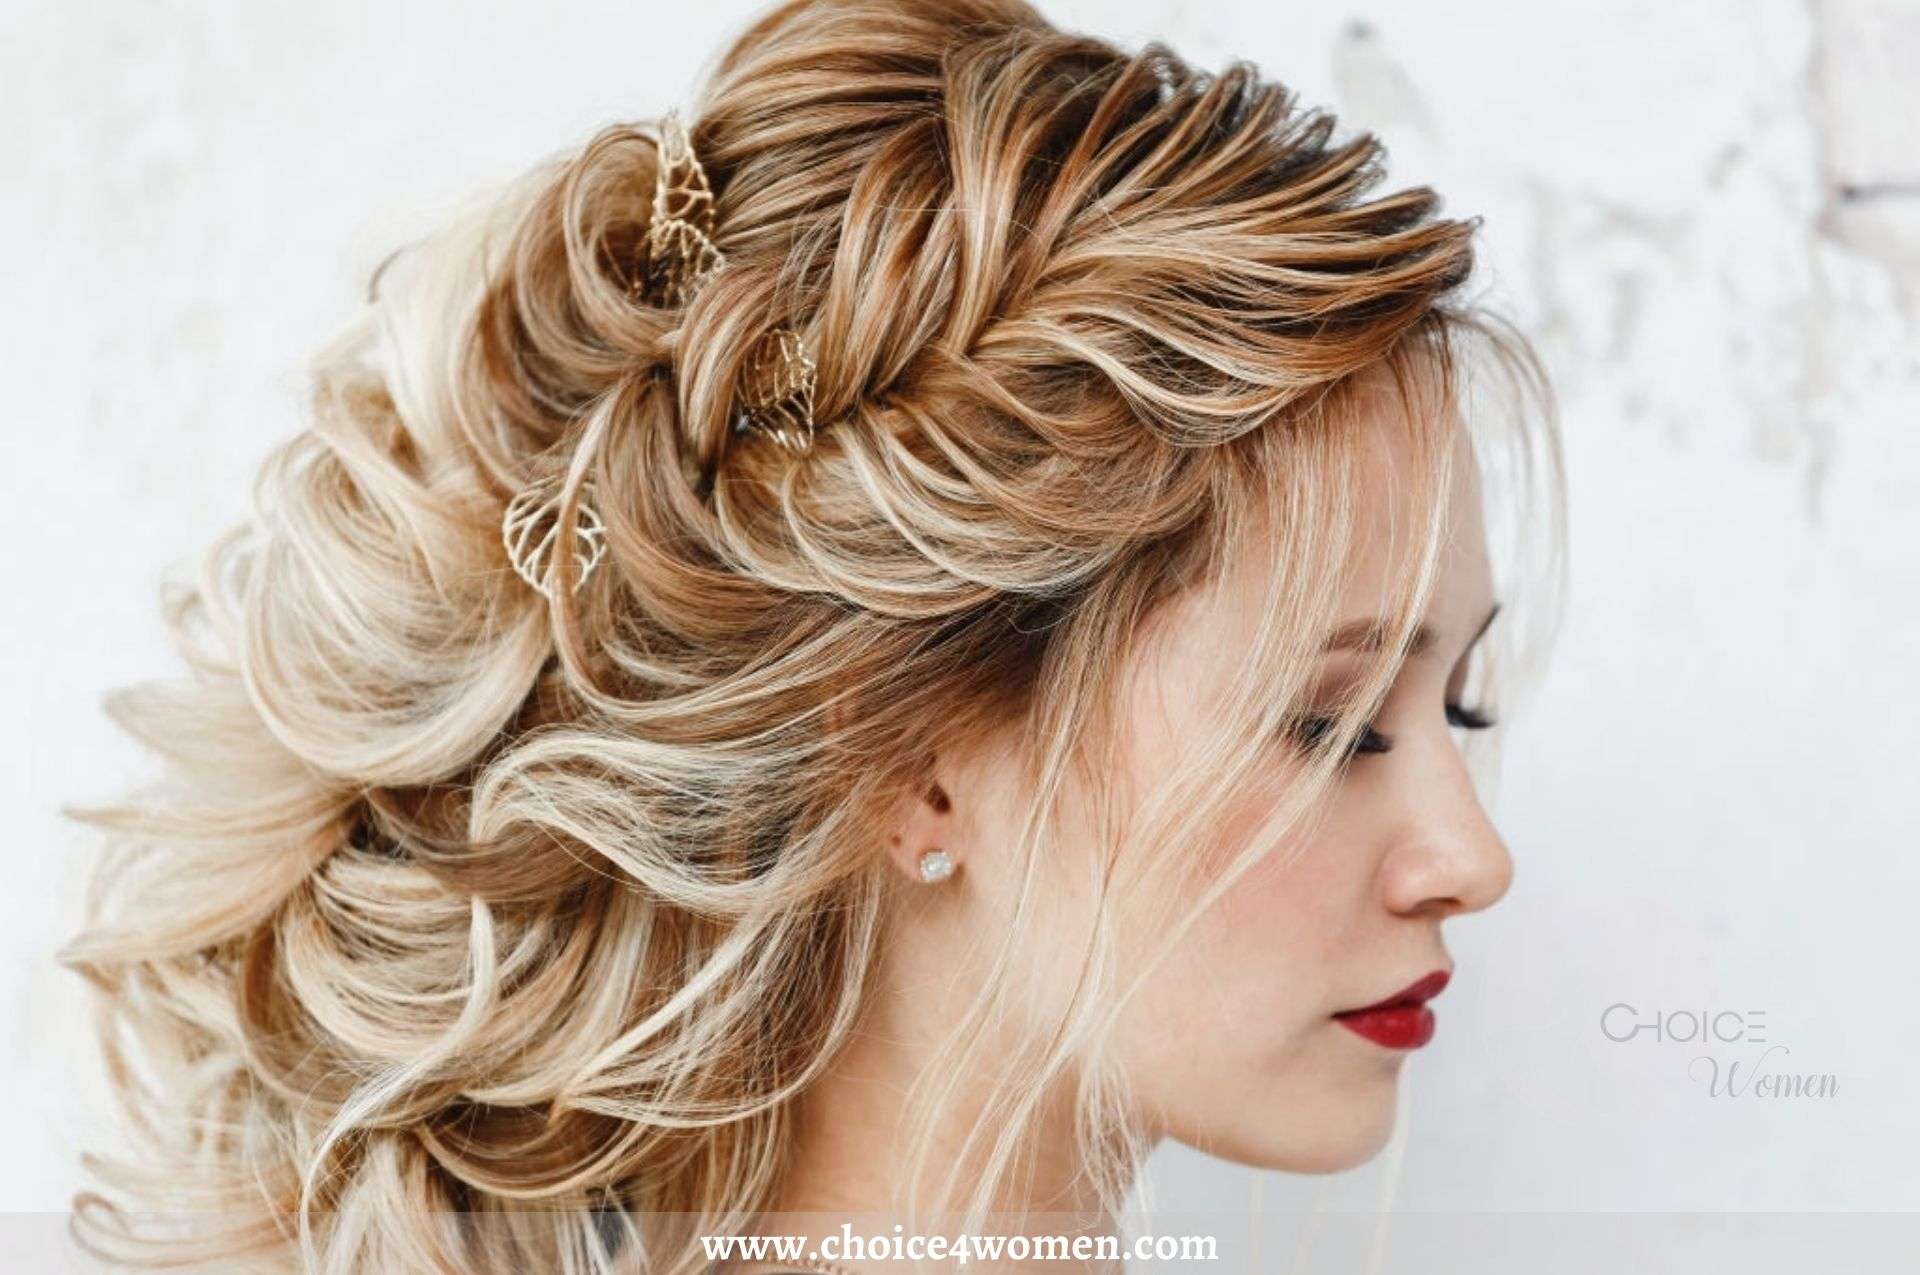 Top 23 Trendy Wedding Hairstyles For Your Special Day